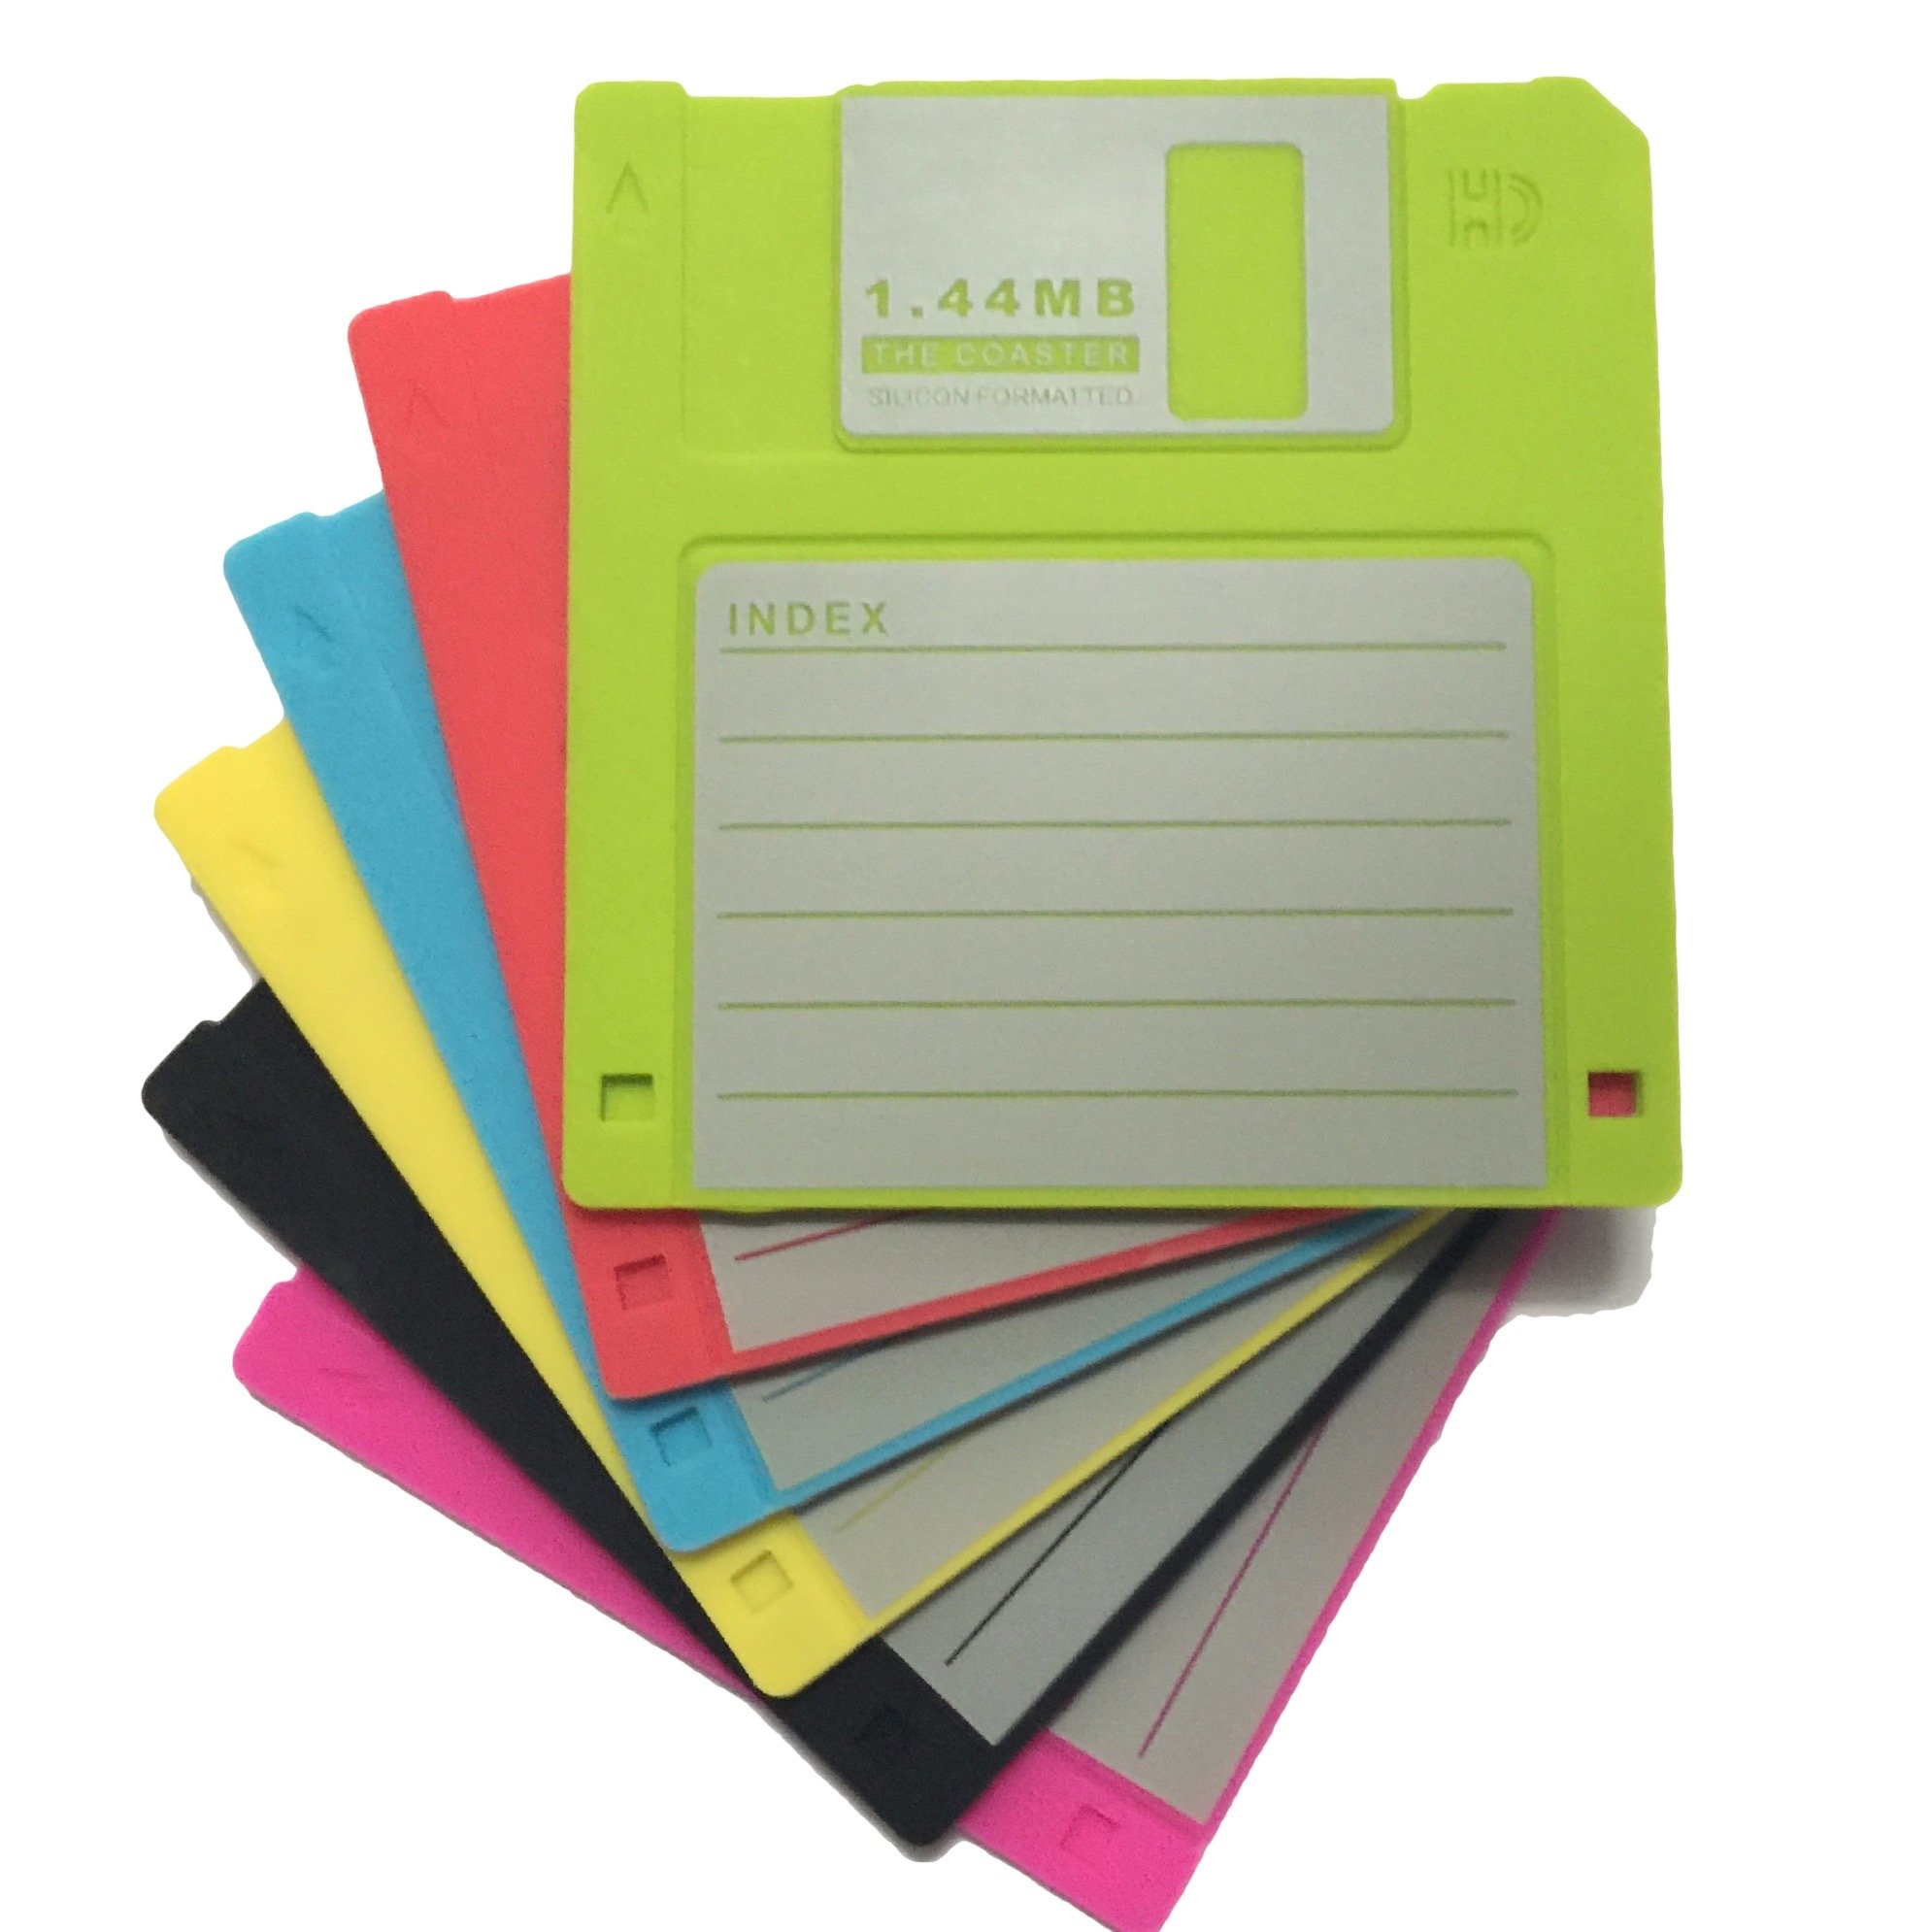 Set of 6 Blank Labled Retro Floppy Disk Silicone Drink Coaster 1.44m Diskette Novelty Design Non-slip